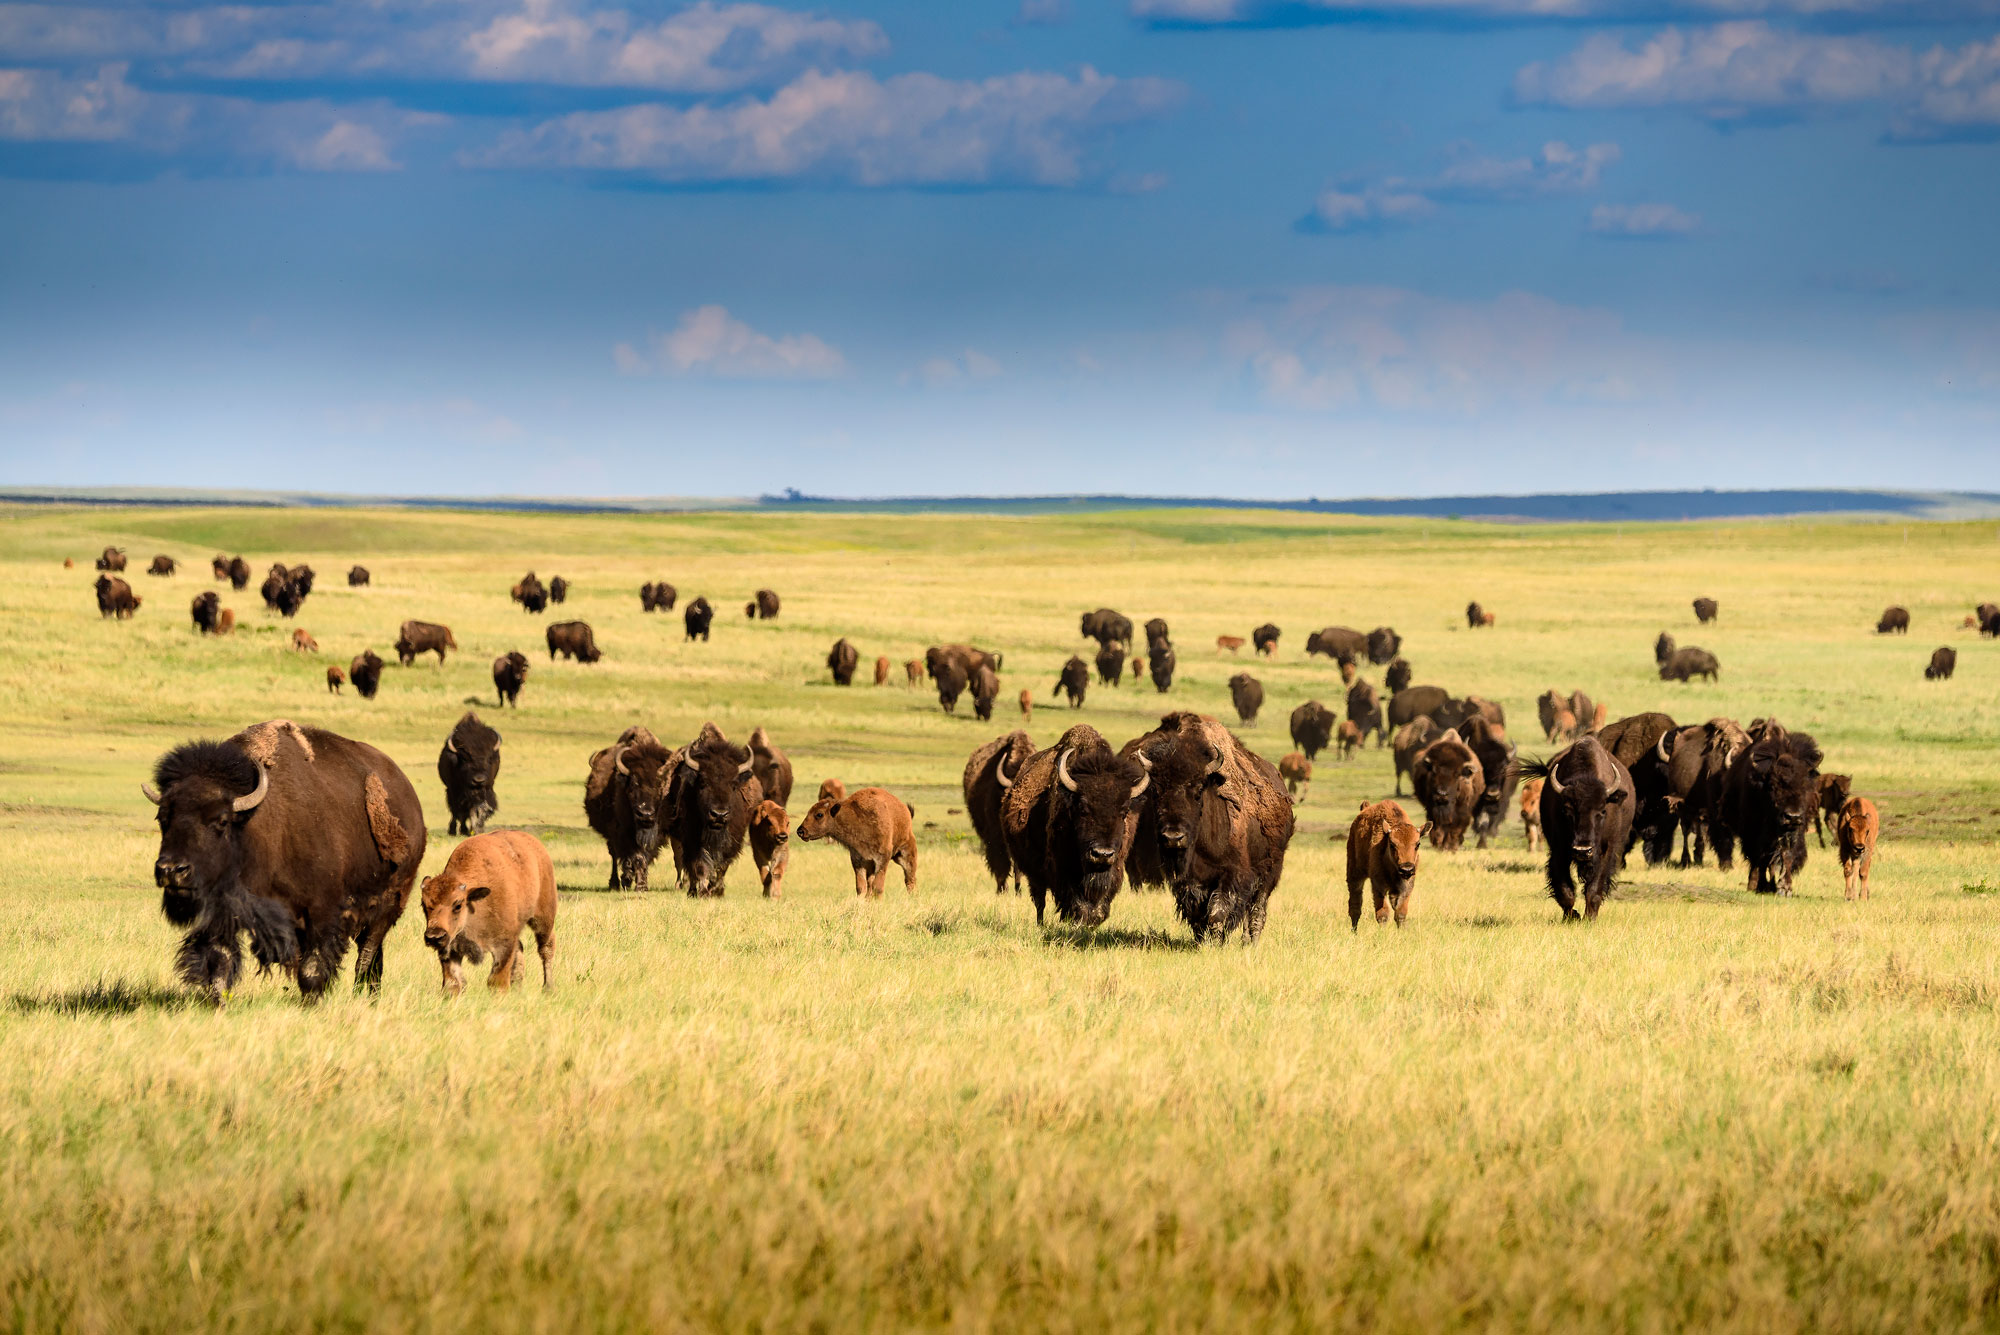 South Dakota's western region delivers on its promise as one of America's most epic road trip destinations.